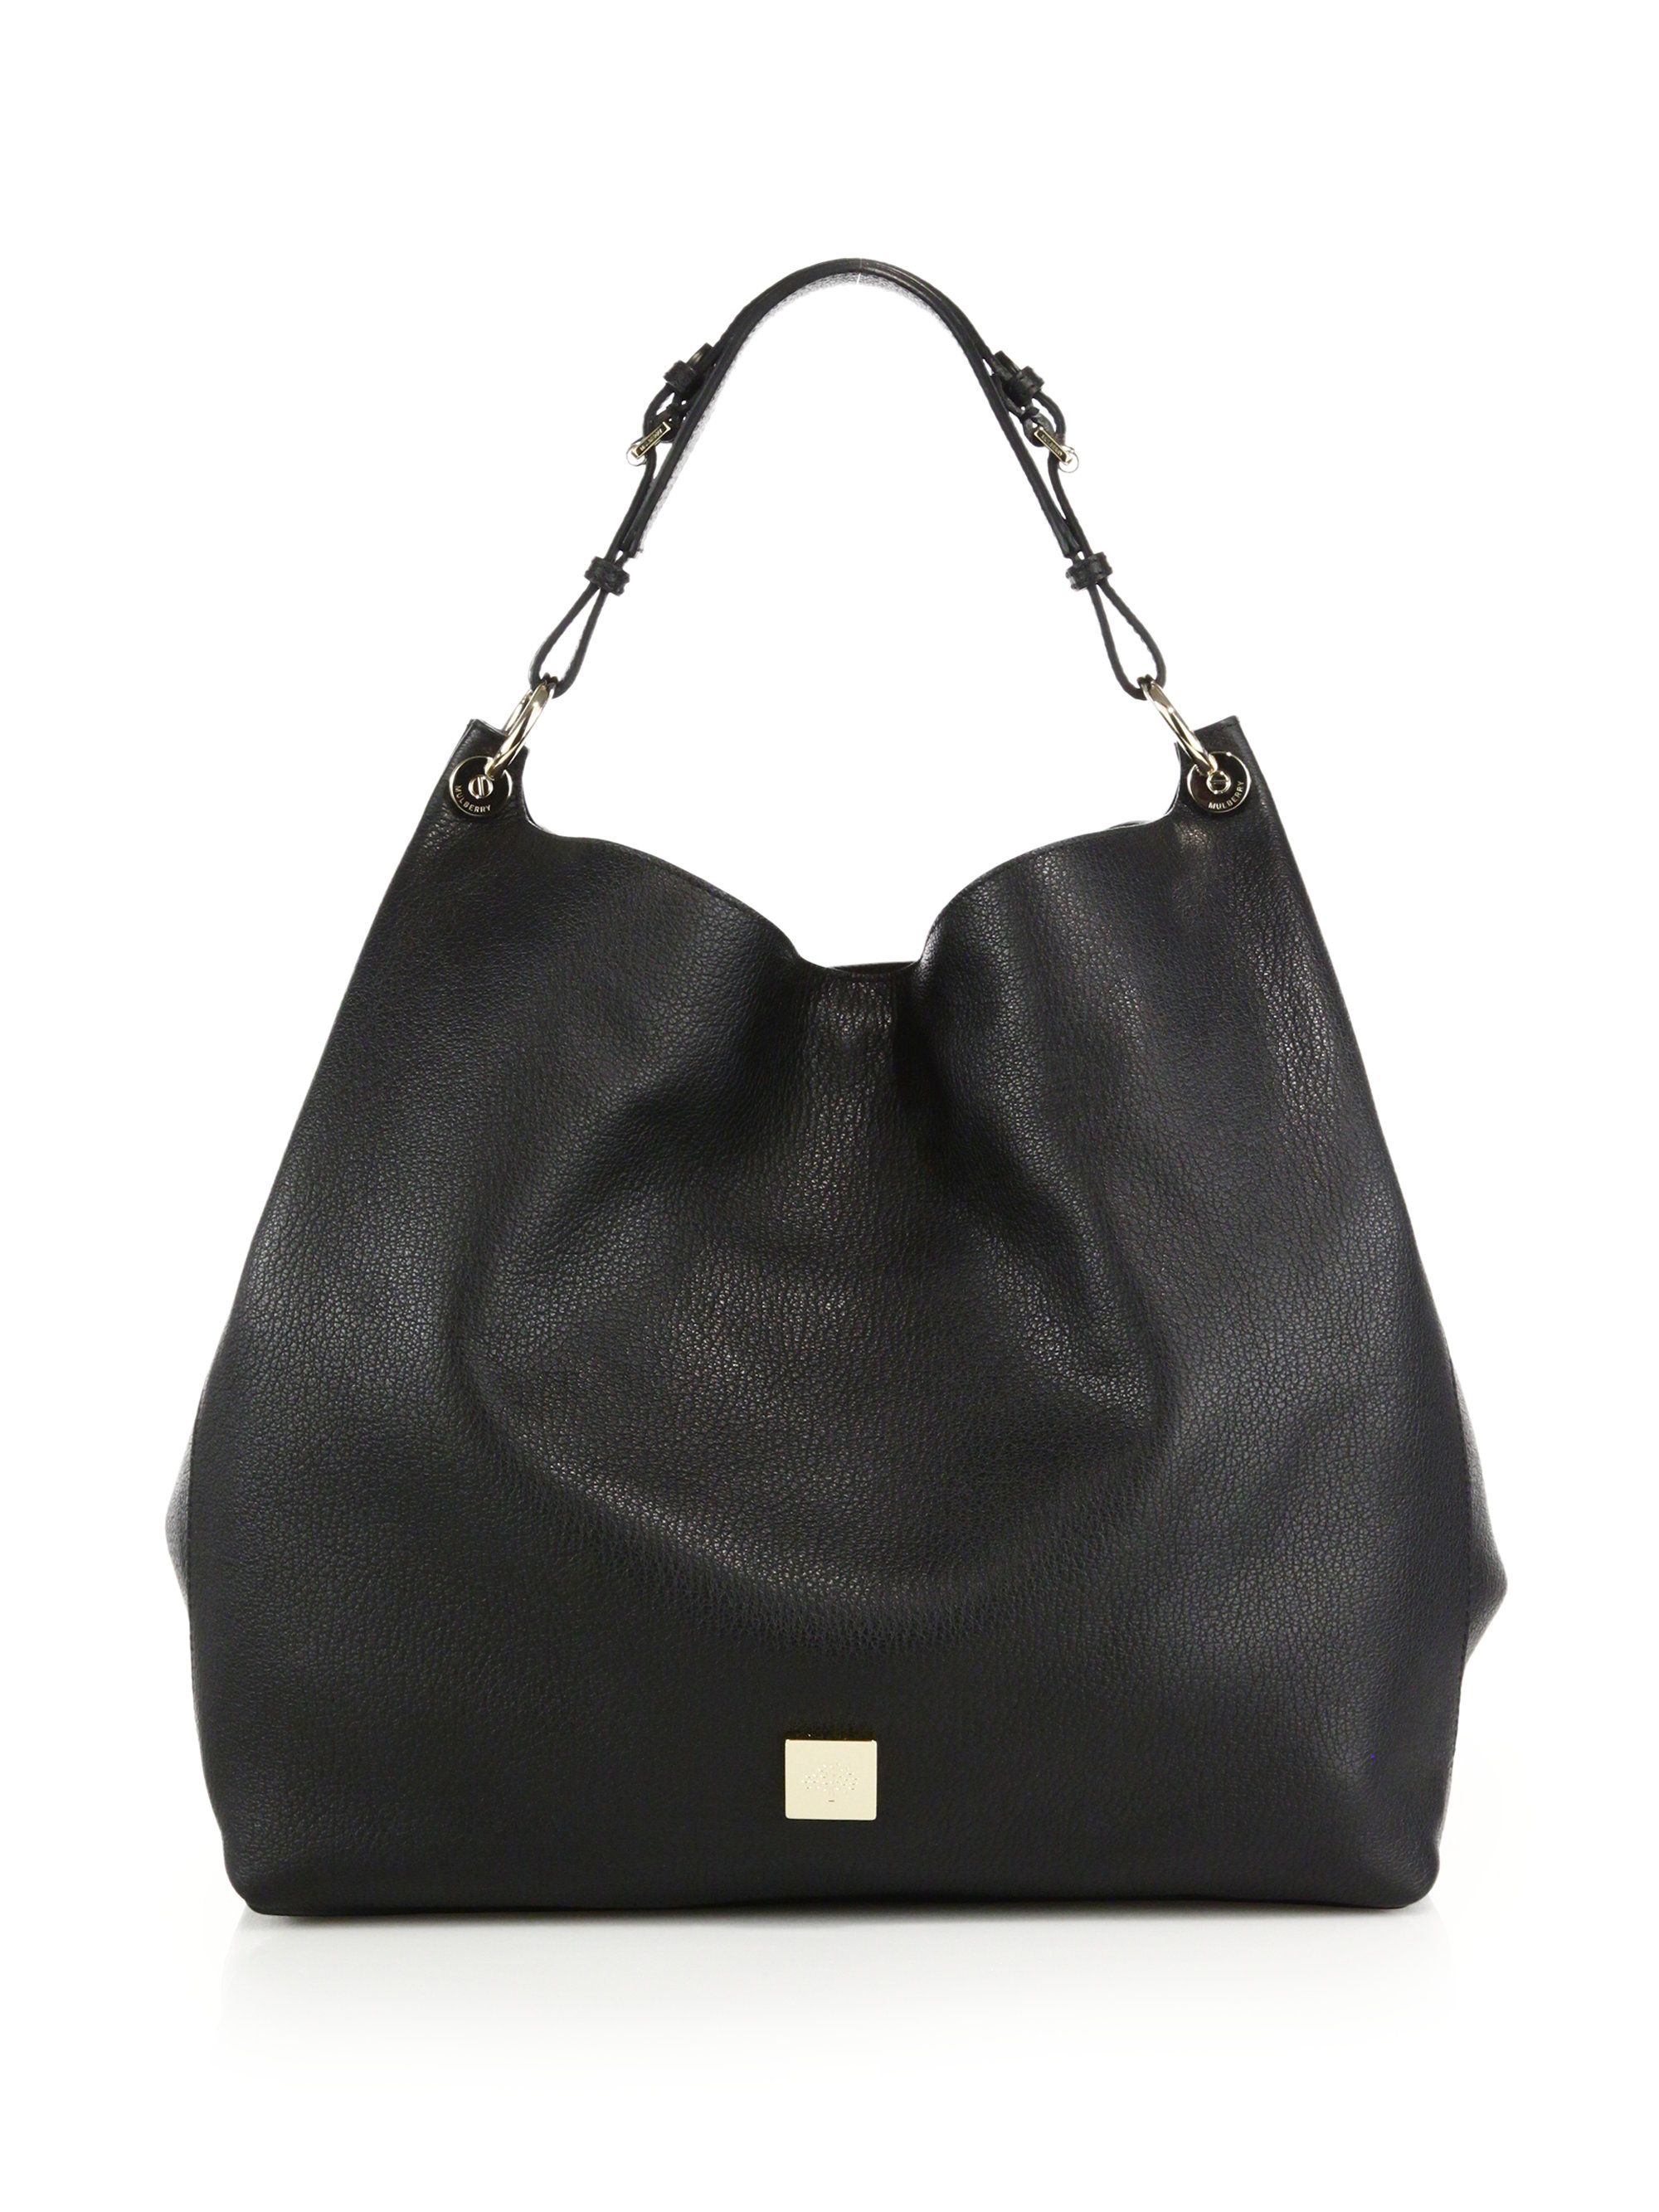 5d835c0f1d11 ... closeout lyst mulberry freya leather hobo bag in black 151b4 6cdee